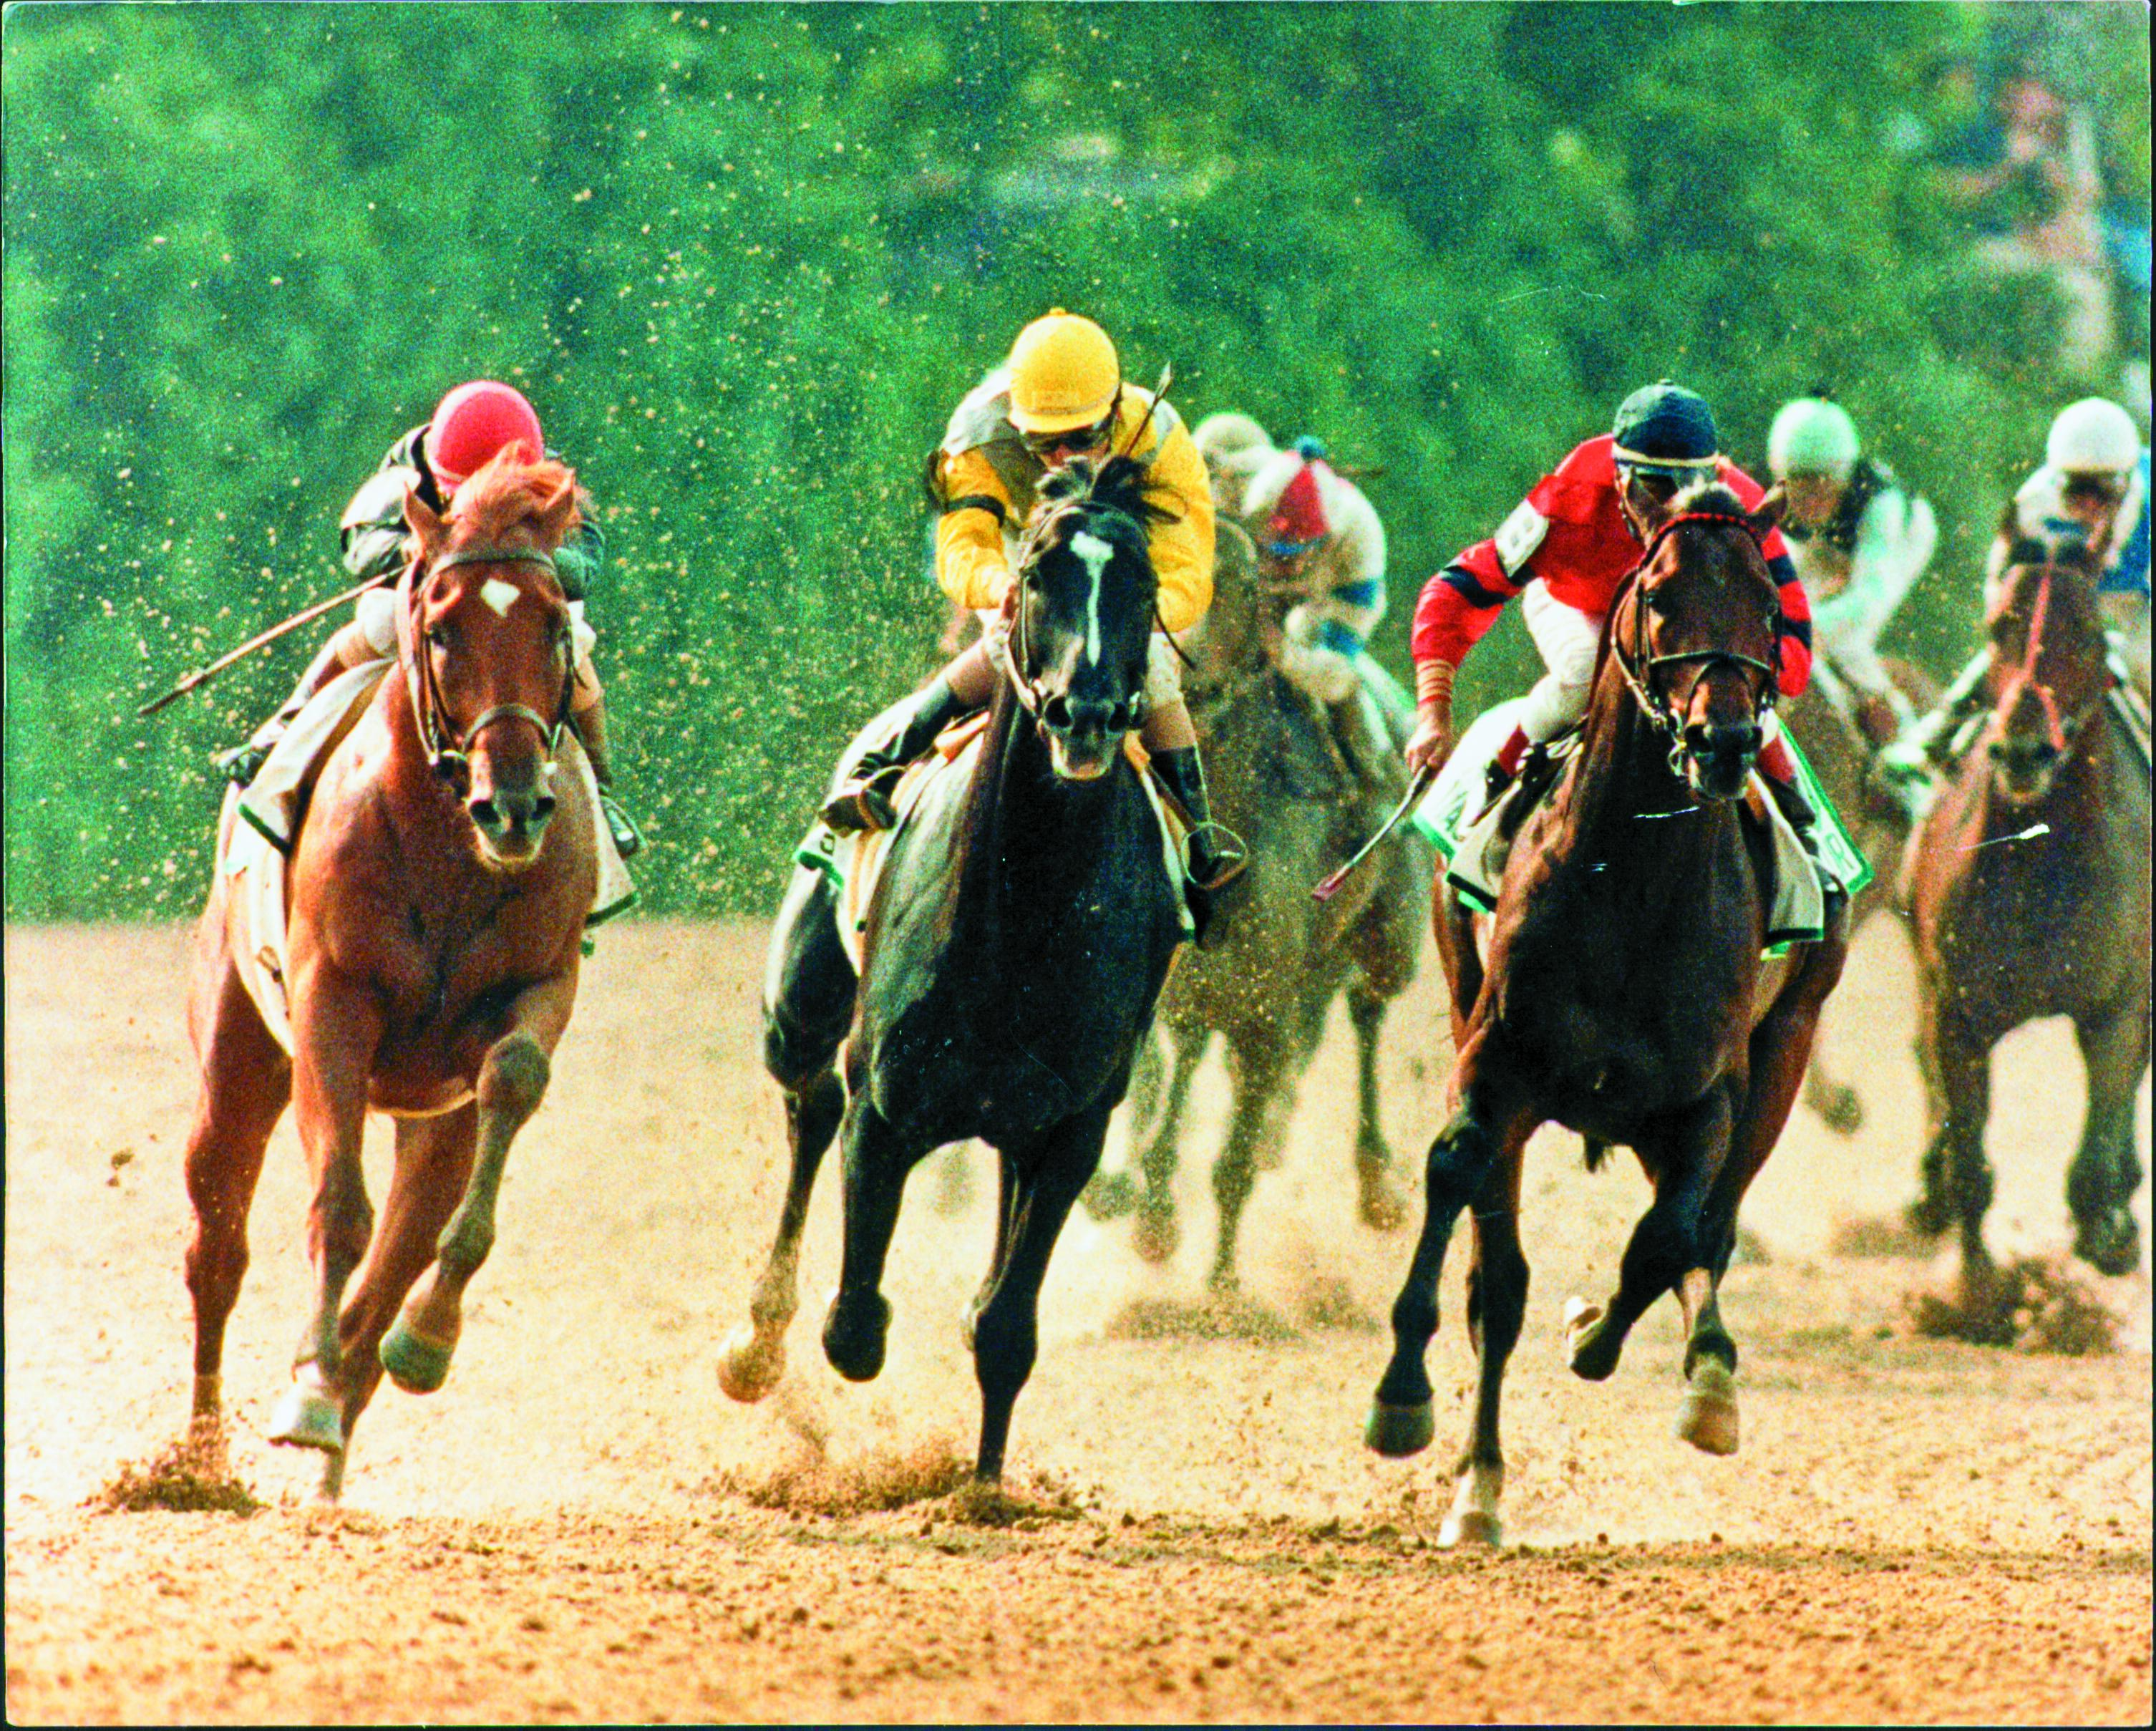 Easy Goer sweeps past Sunday Silence in the 1989 Belmont Stakes.